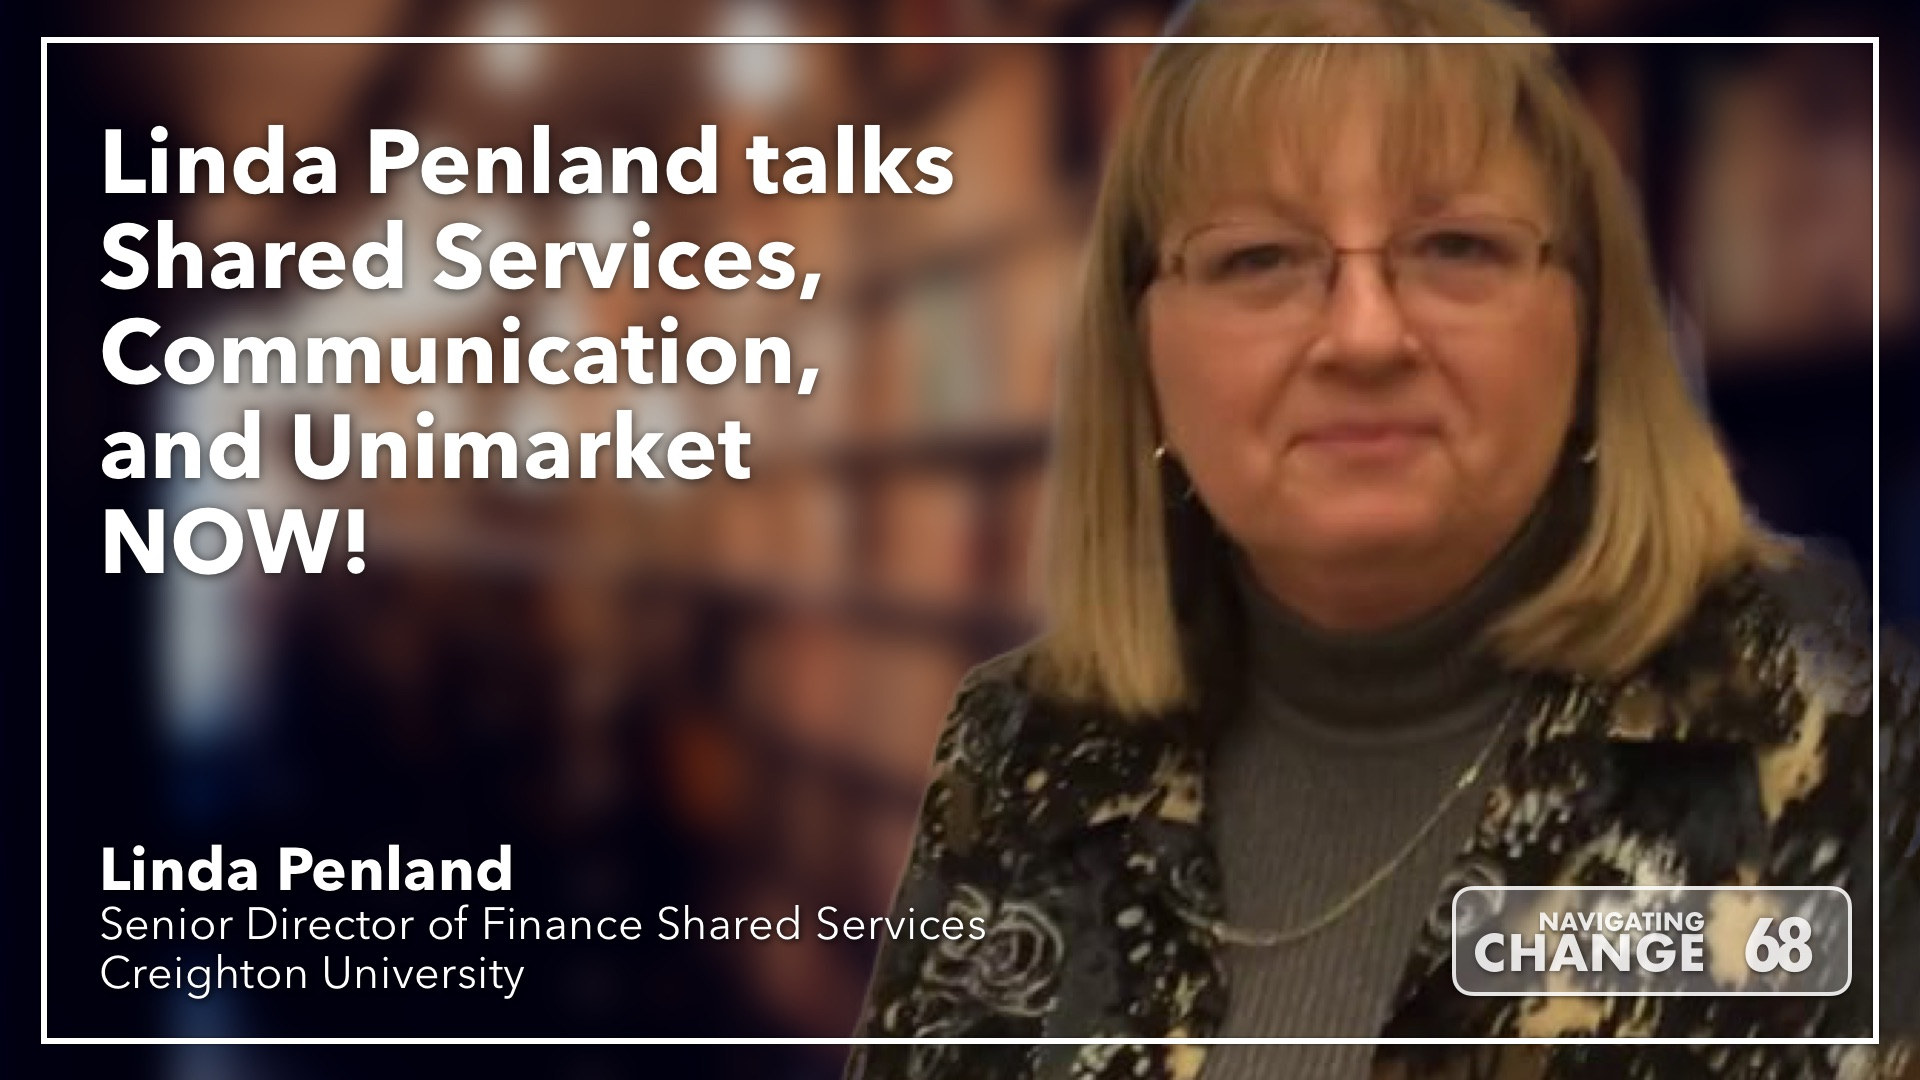 Listen to Linda Penland talks Shared Services, Communication, and Unimarket NOW! on Navigating Change The Education Podcast